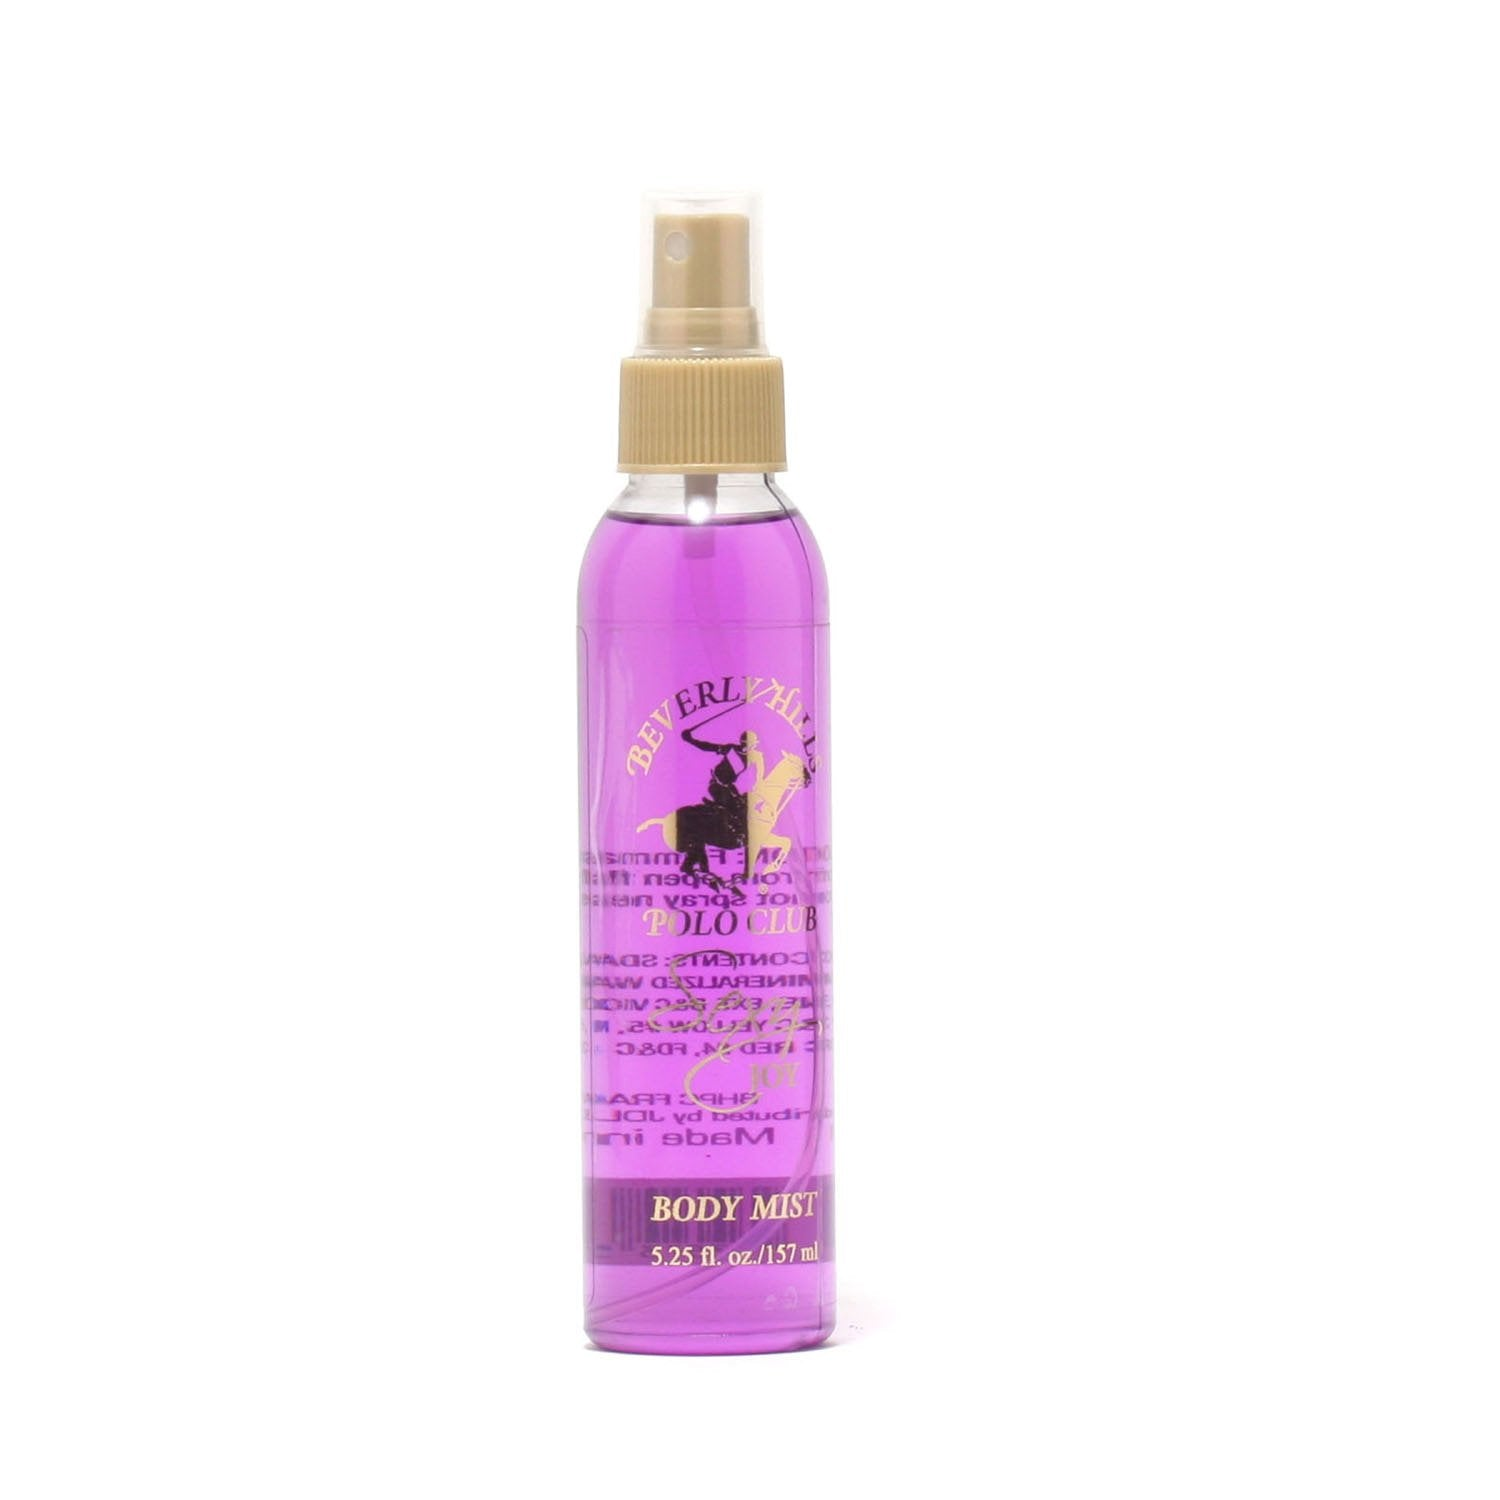 Perfume - BEVERLY HILLS POLO CLUB SEXY JOY FOR WOMEN - BODY MIST SPRAY, 5.25 OZ